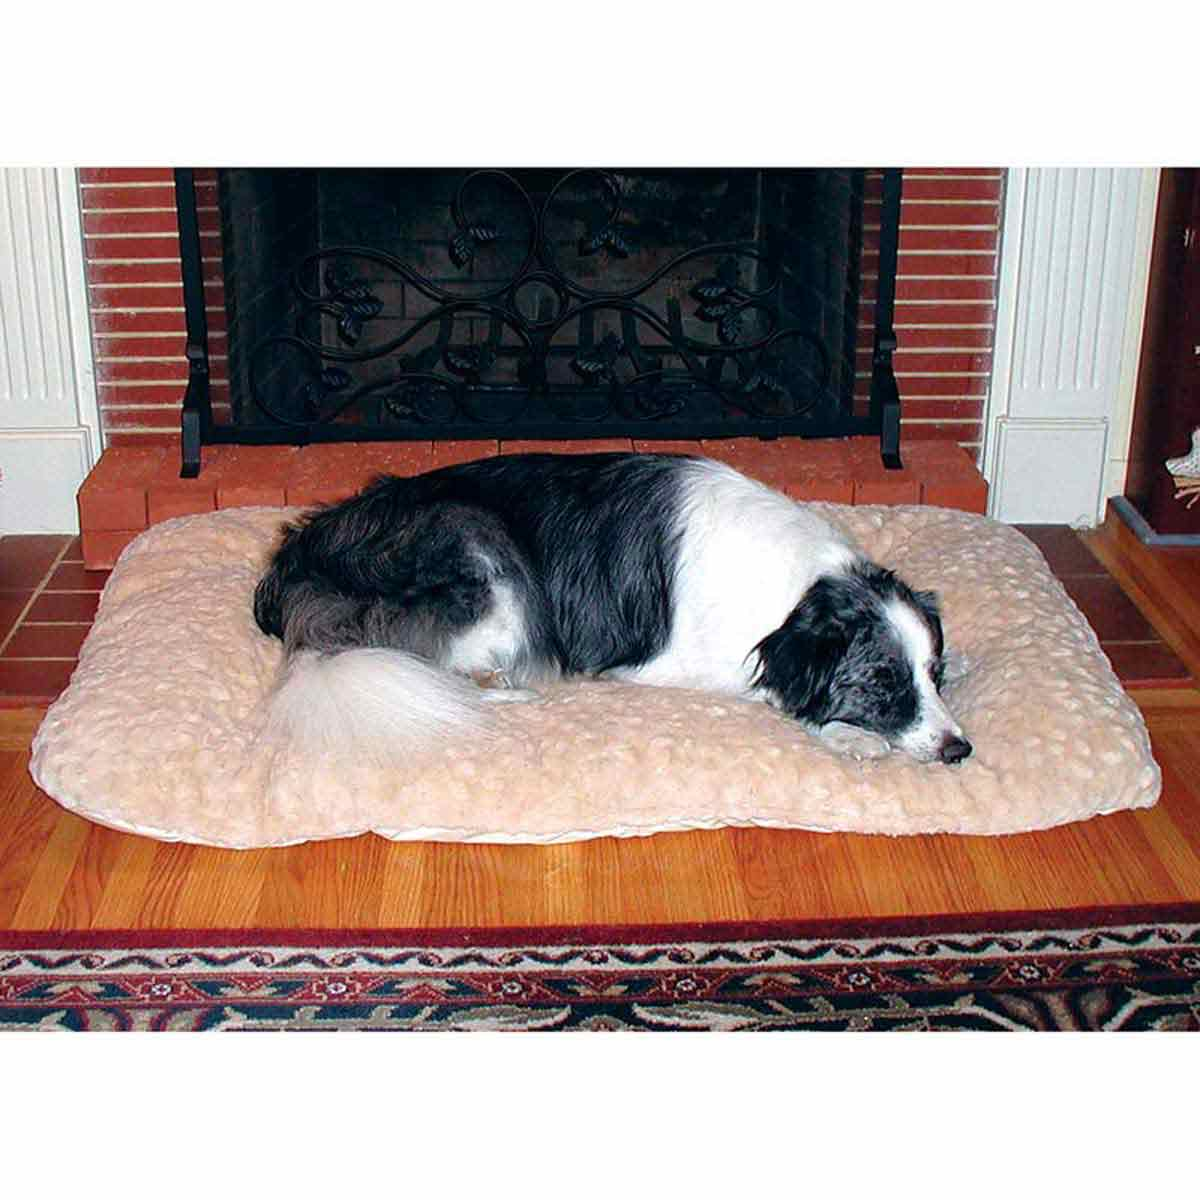 Dog Sleeping on Snoozzy Comforter 29 inches by 18 inches Natural